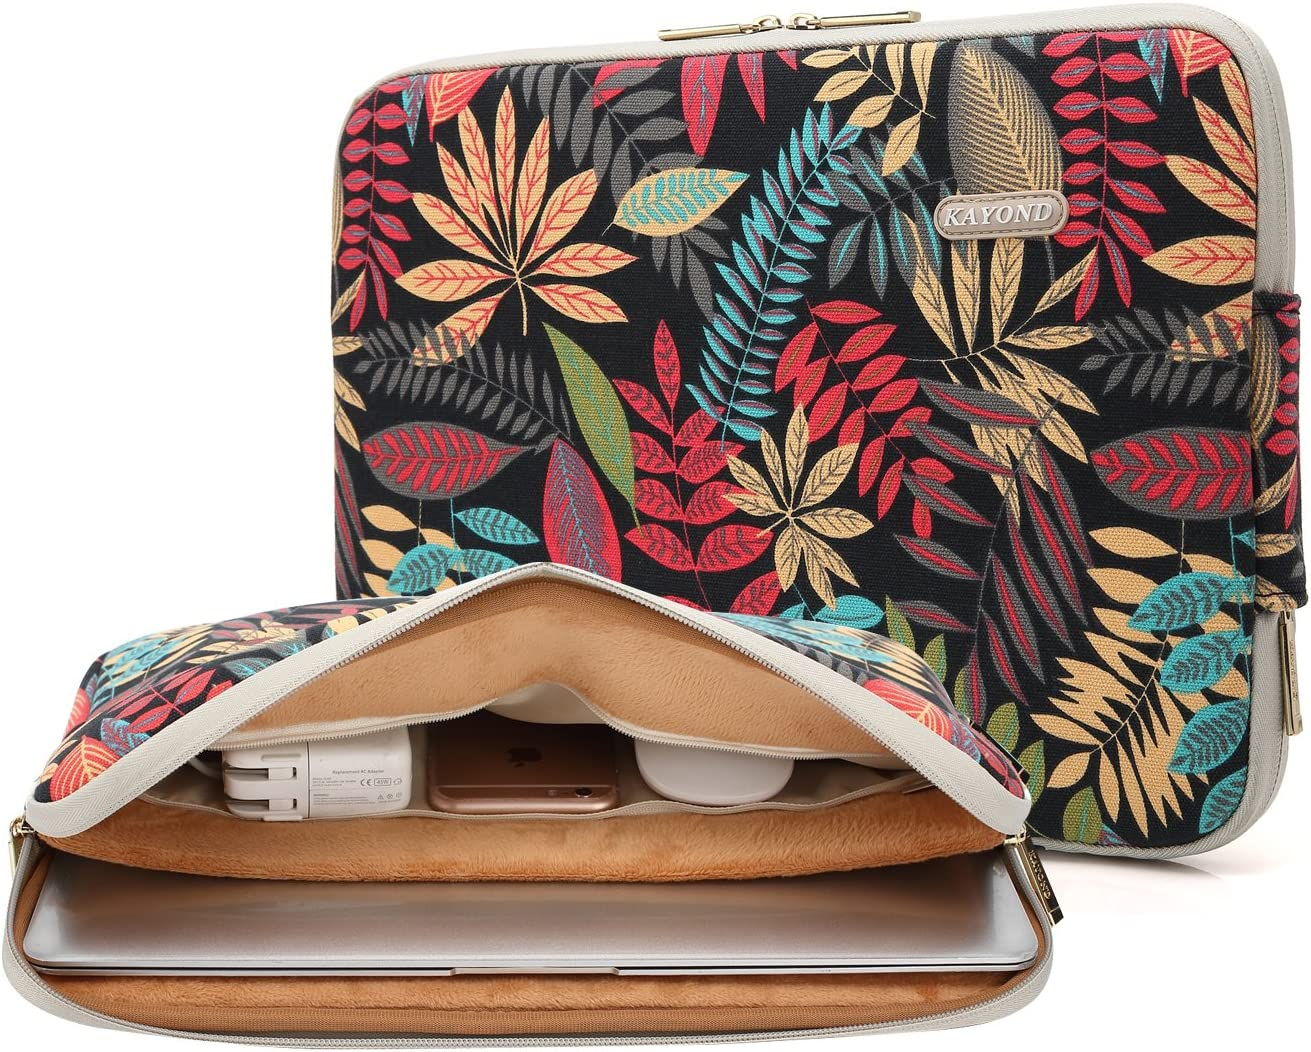 KAYOND Canvas Water-Resistant for 11-11.6 Inch Laptop Sleeve Case Bag (11-11.6 Inches, Forest Series Black)